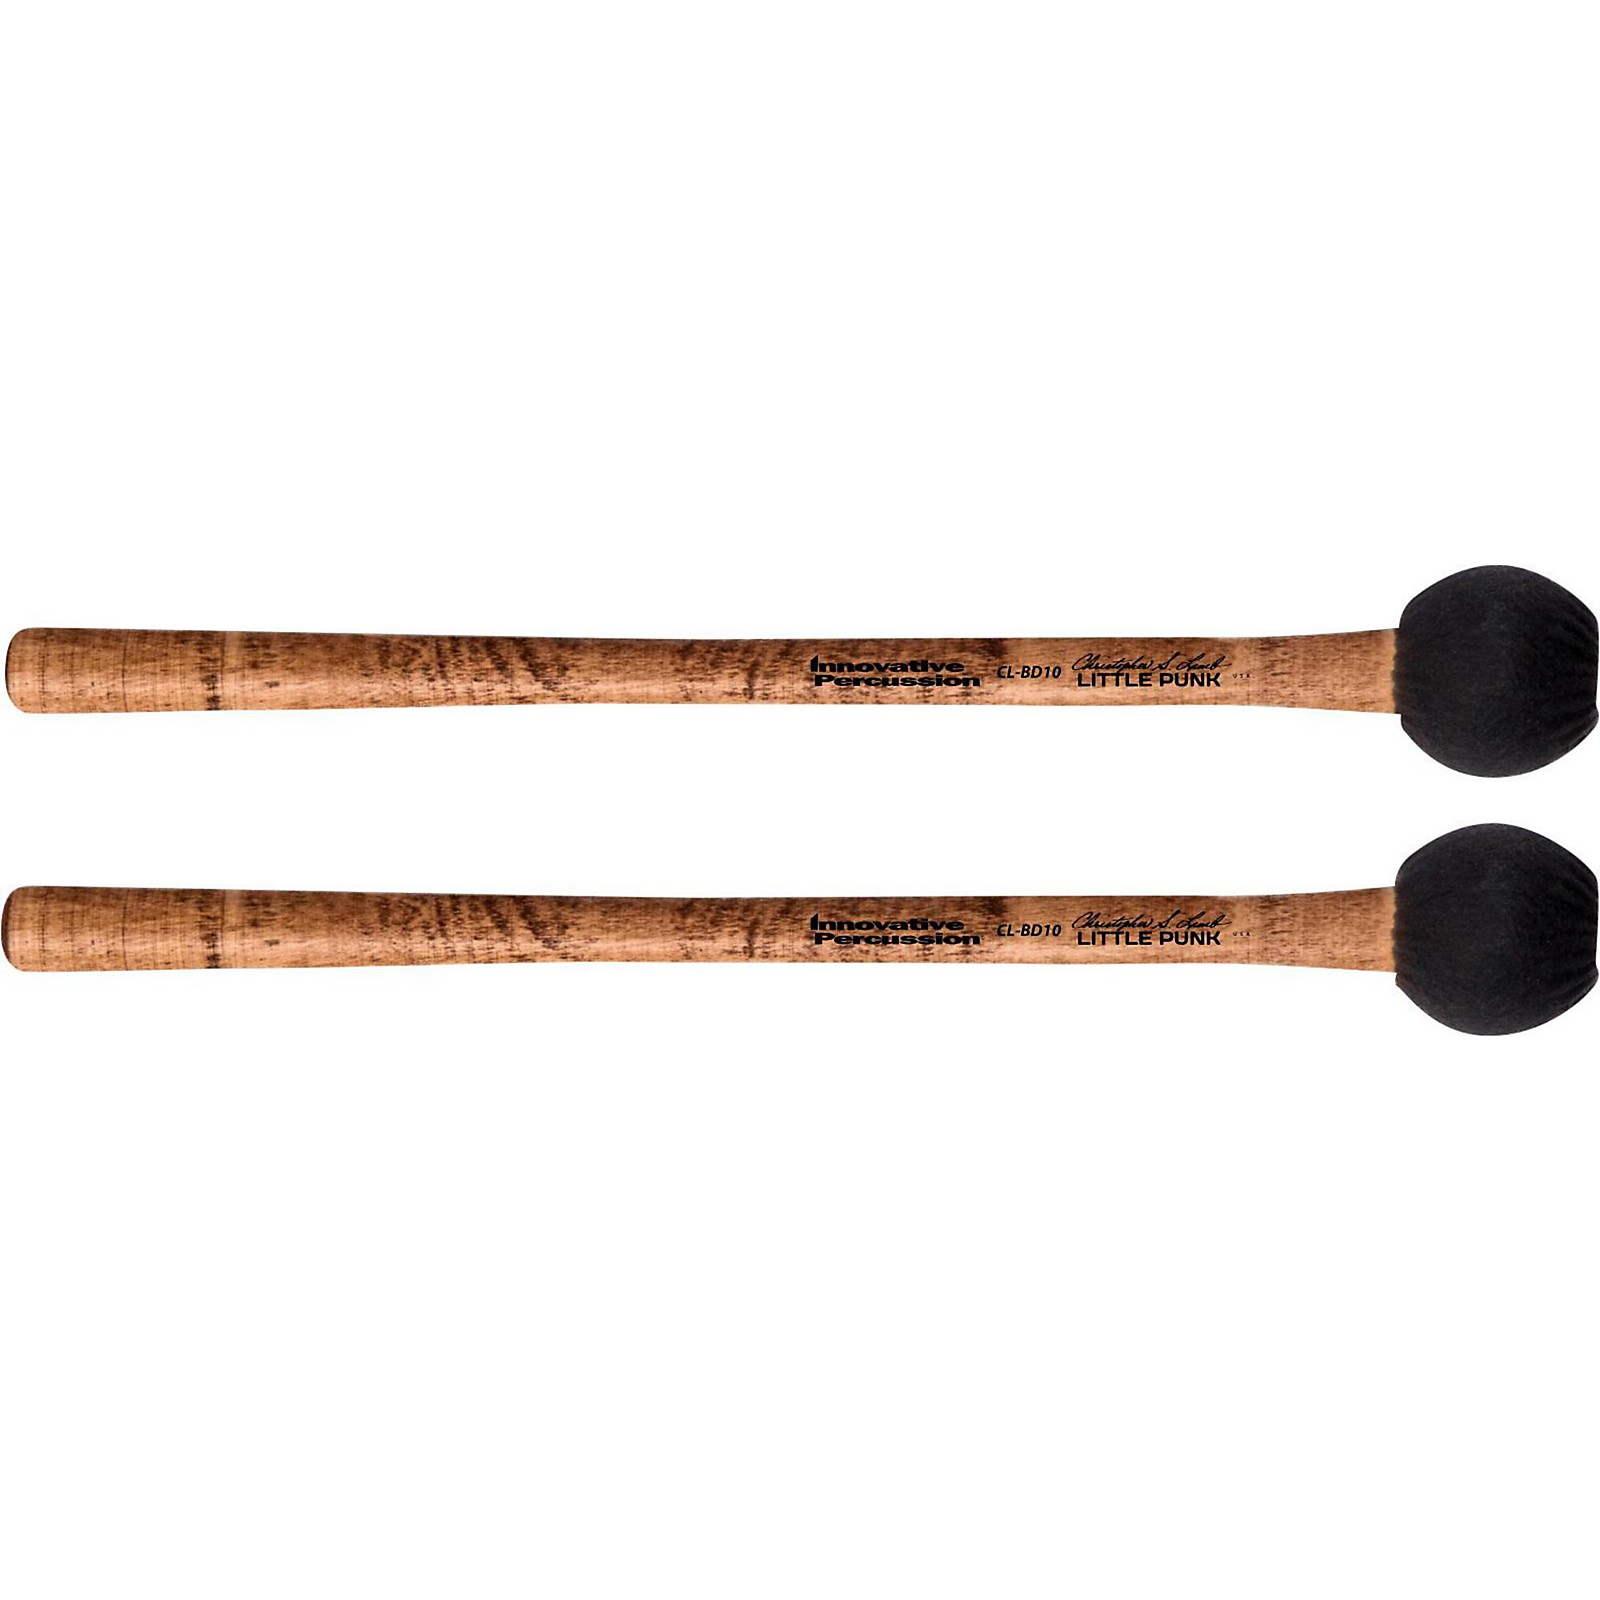 Innovative Percussion Concert Bass Drum Mallet – Little Punk (pair)